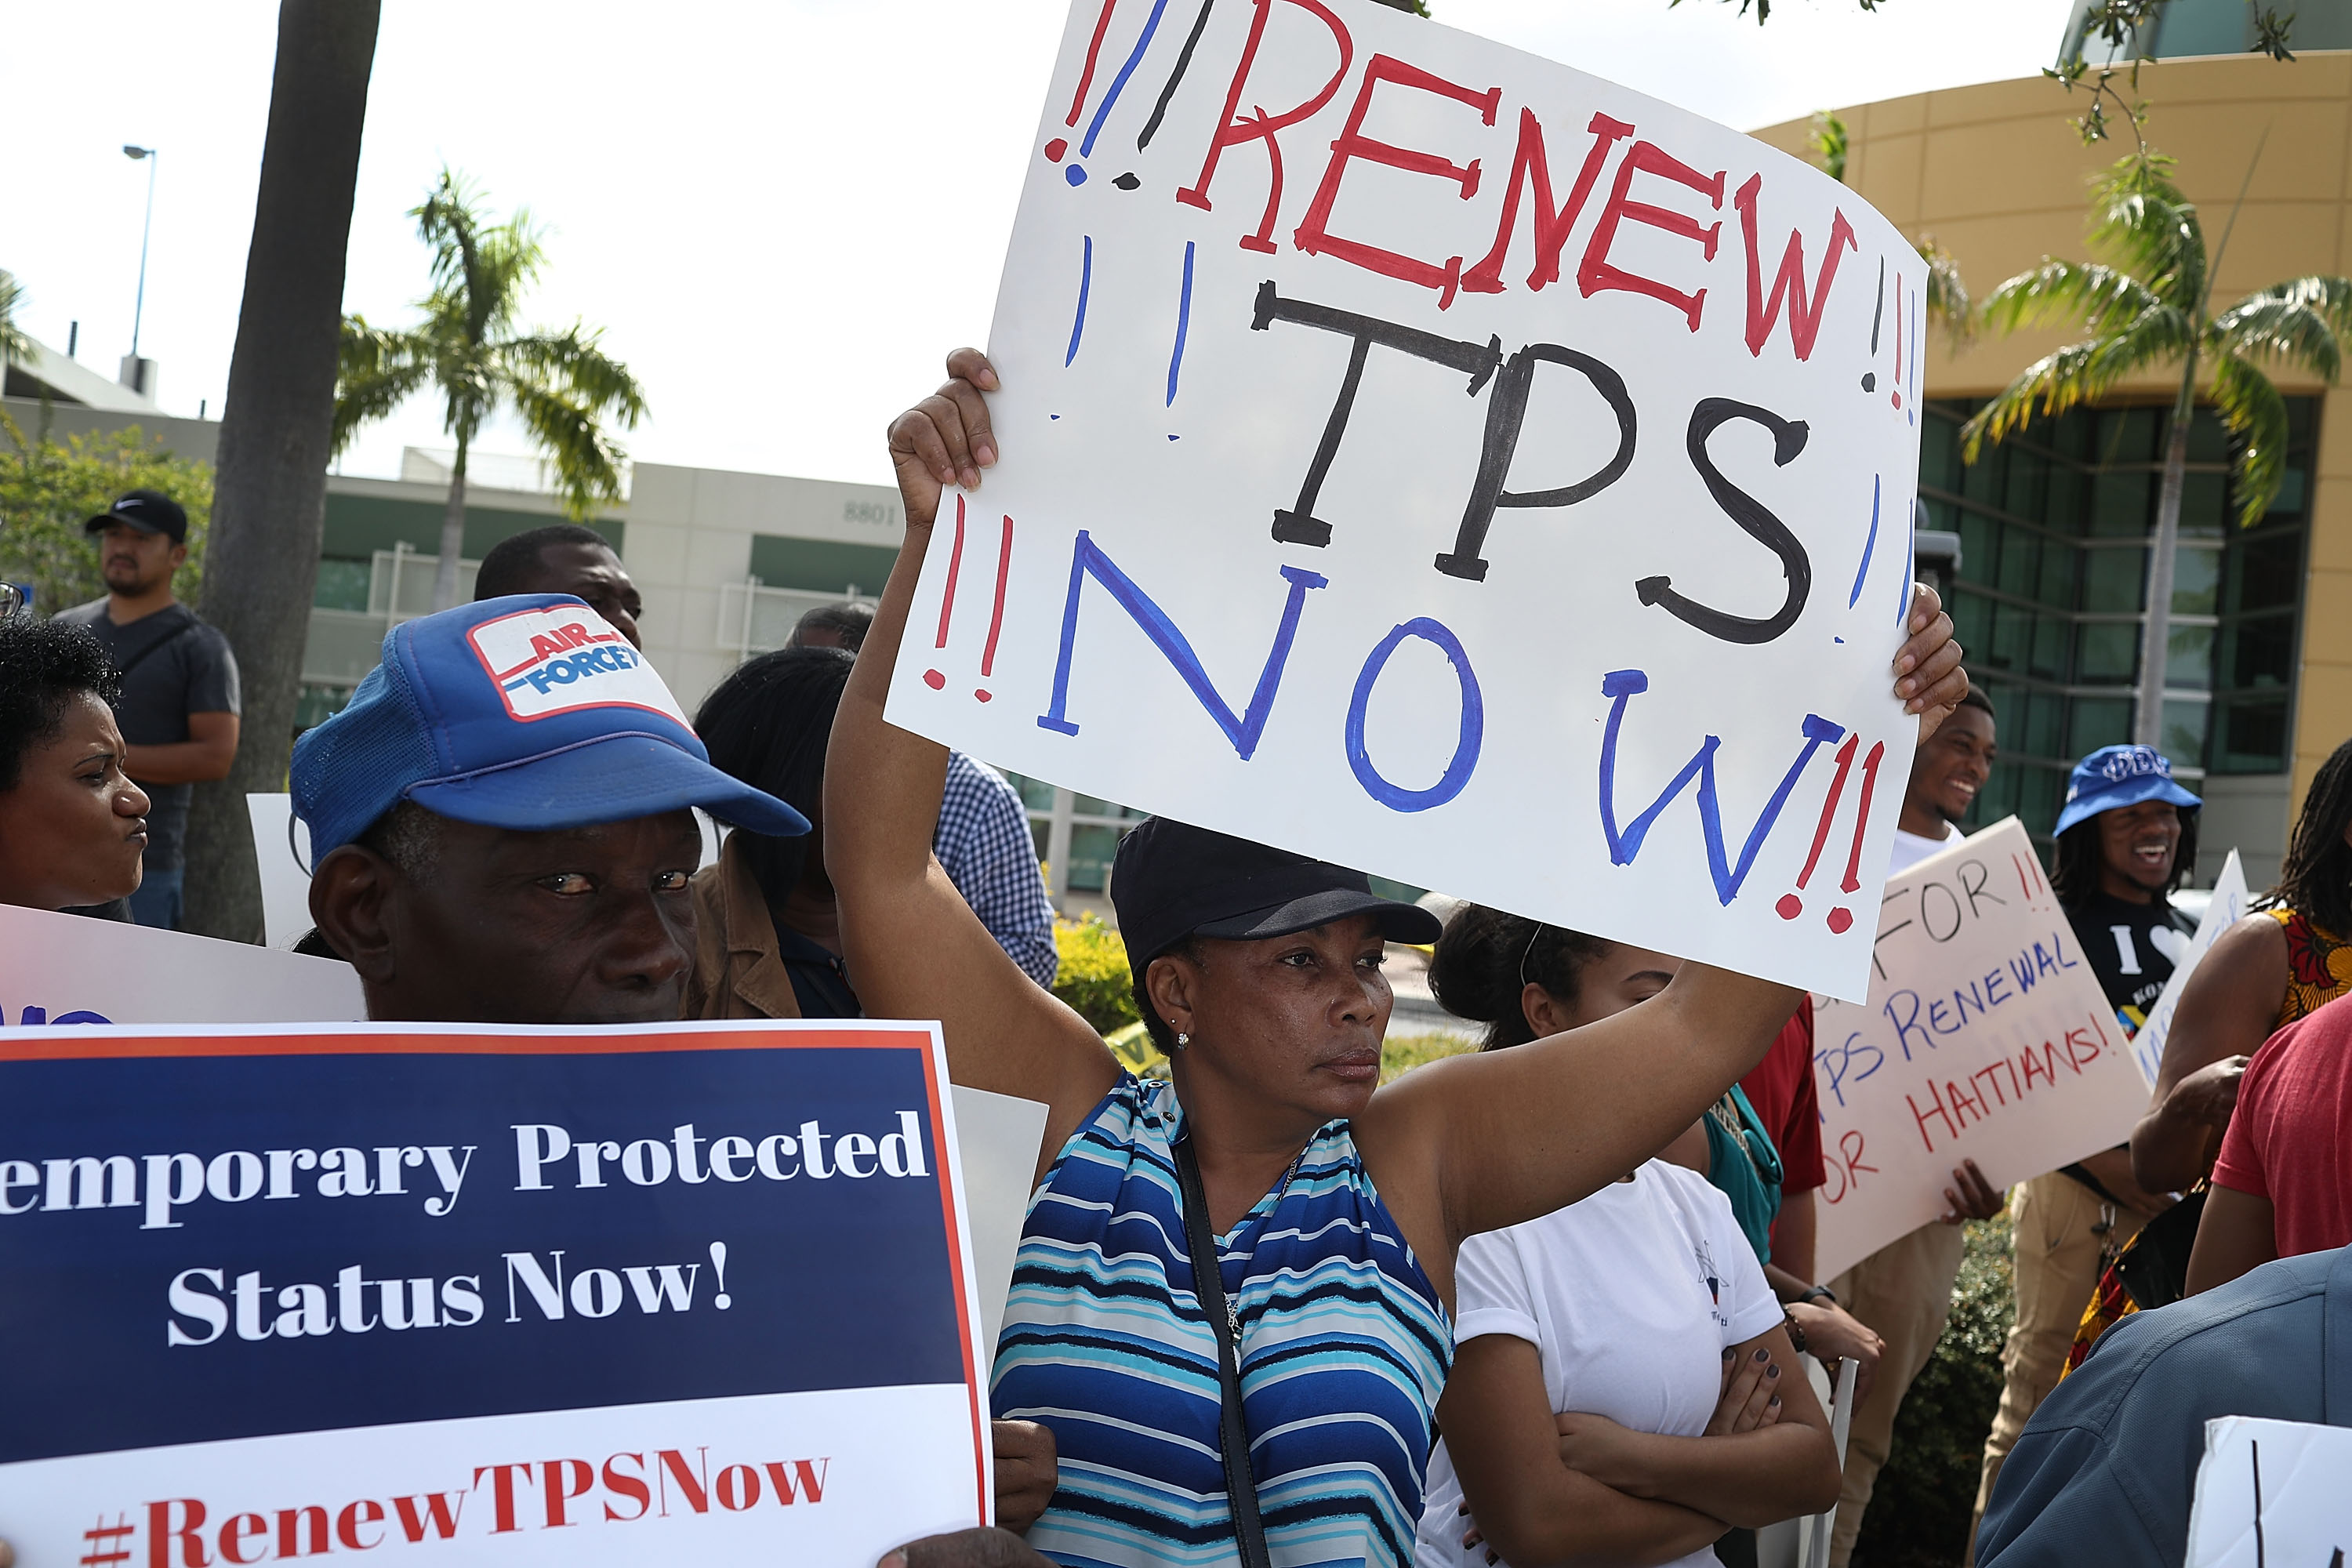 Central Americans Question Why #SaveTPS Hasn't Garnered Same Support as DACA